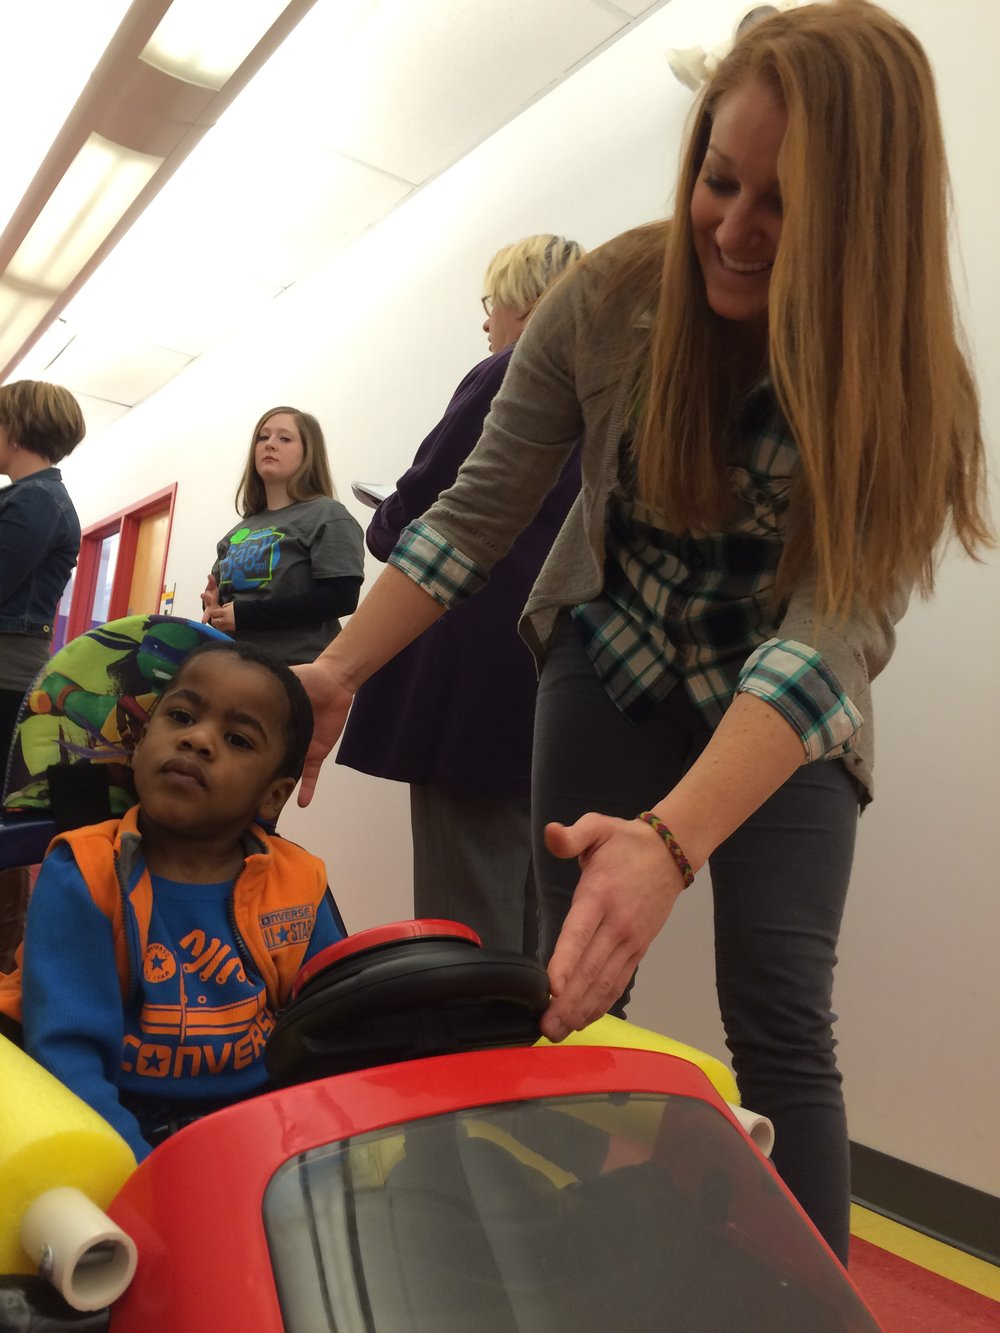 Trace Bales test drives his GoBabyGo! car with help from Rockhurst University physical therapy student Mallory White in March 2015 at the Children's Center for the Visually Impaired in Kansas City, MO. (Photo by Rockhurst University)